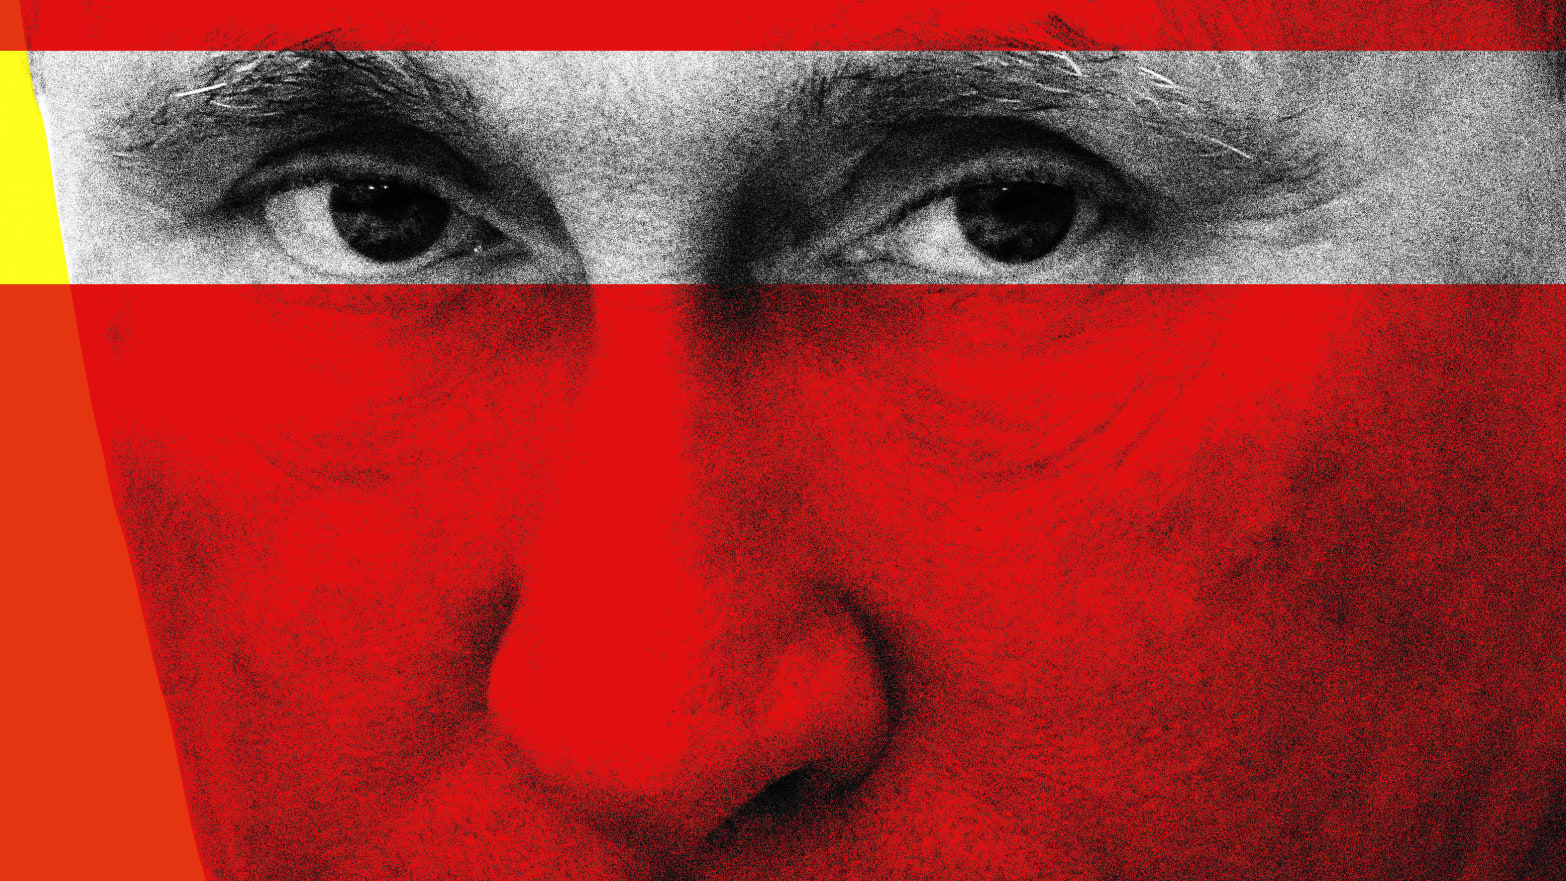 Trump Invited New Russian 'Information' About Opponents. Europe Knows Where That Leads.